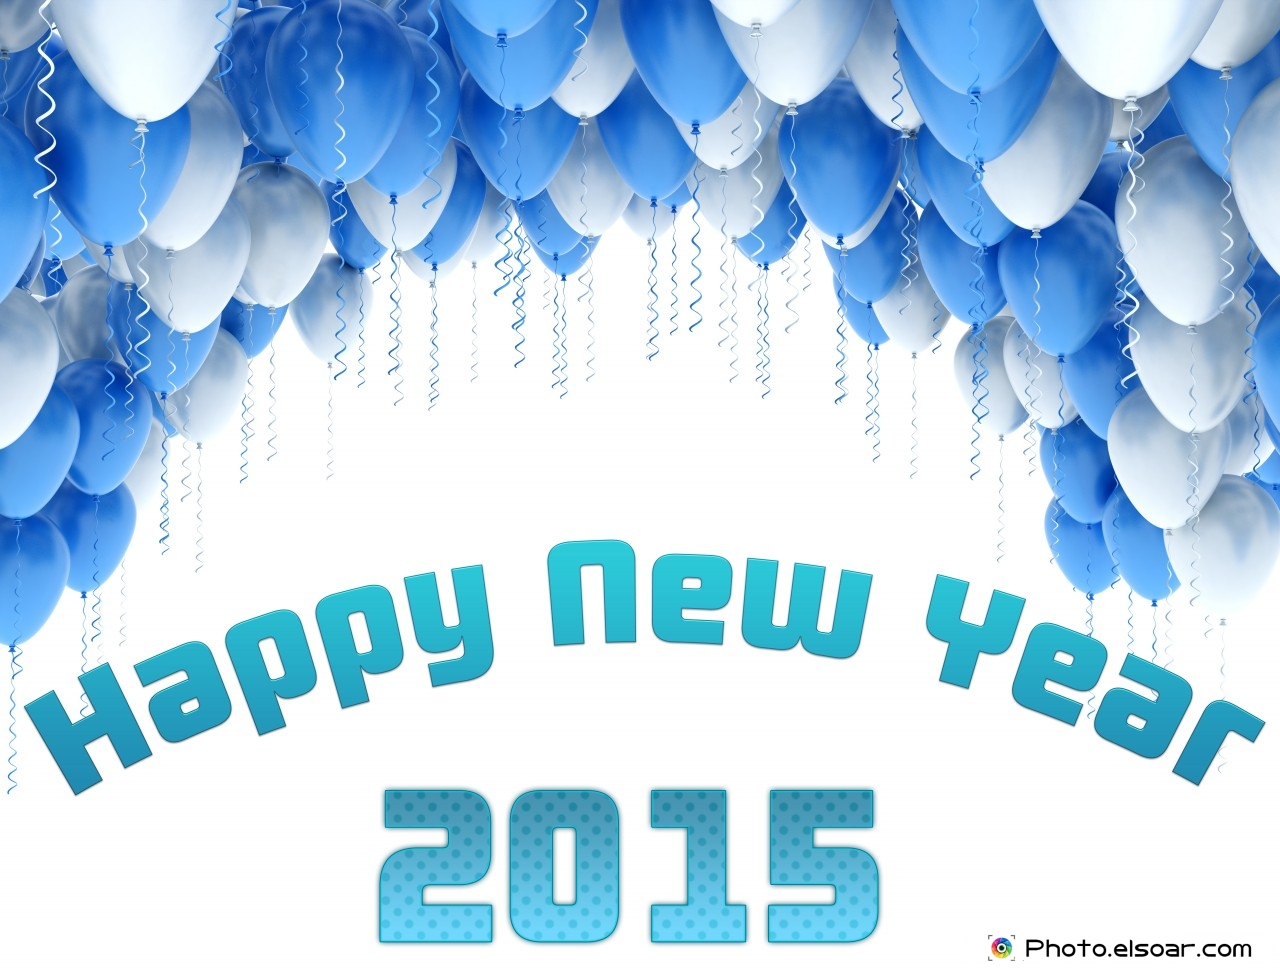 Happy-New-Year-images-hd-2